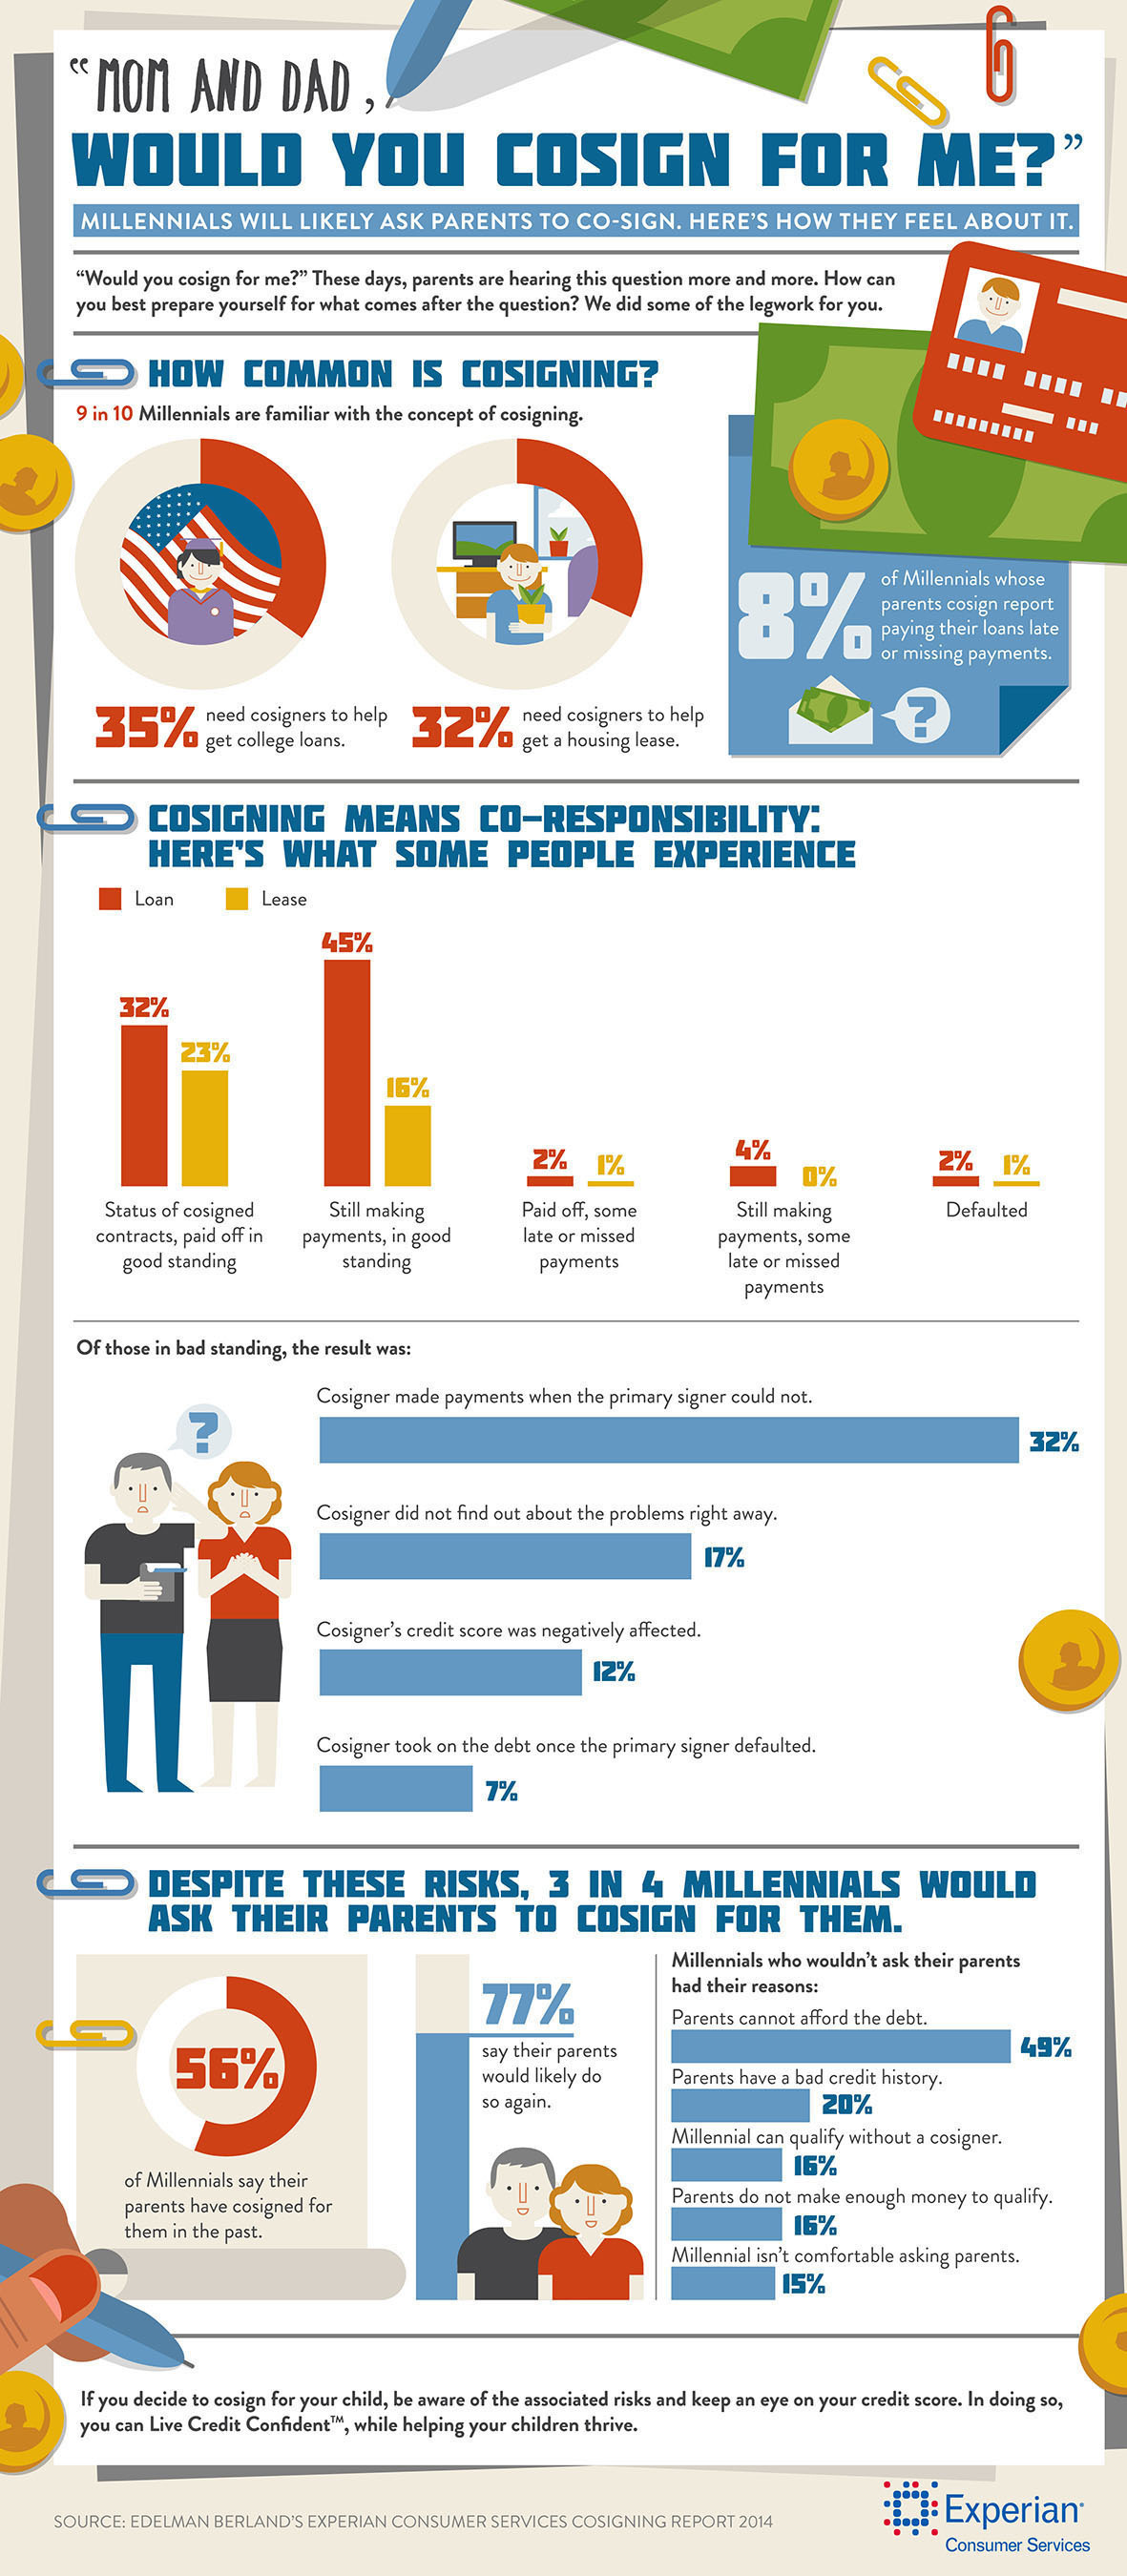 The majority of Millennials are familiar with cosigning and have tapped a cosigner in the past